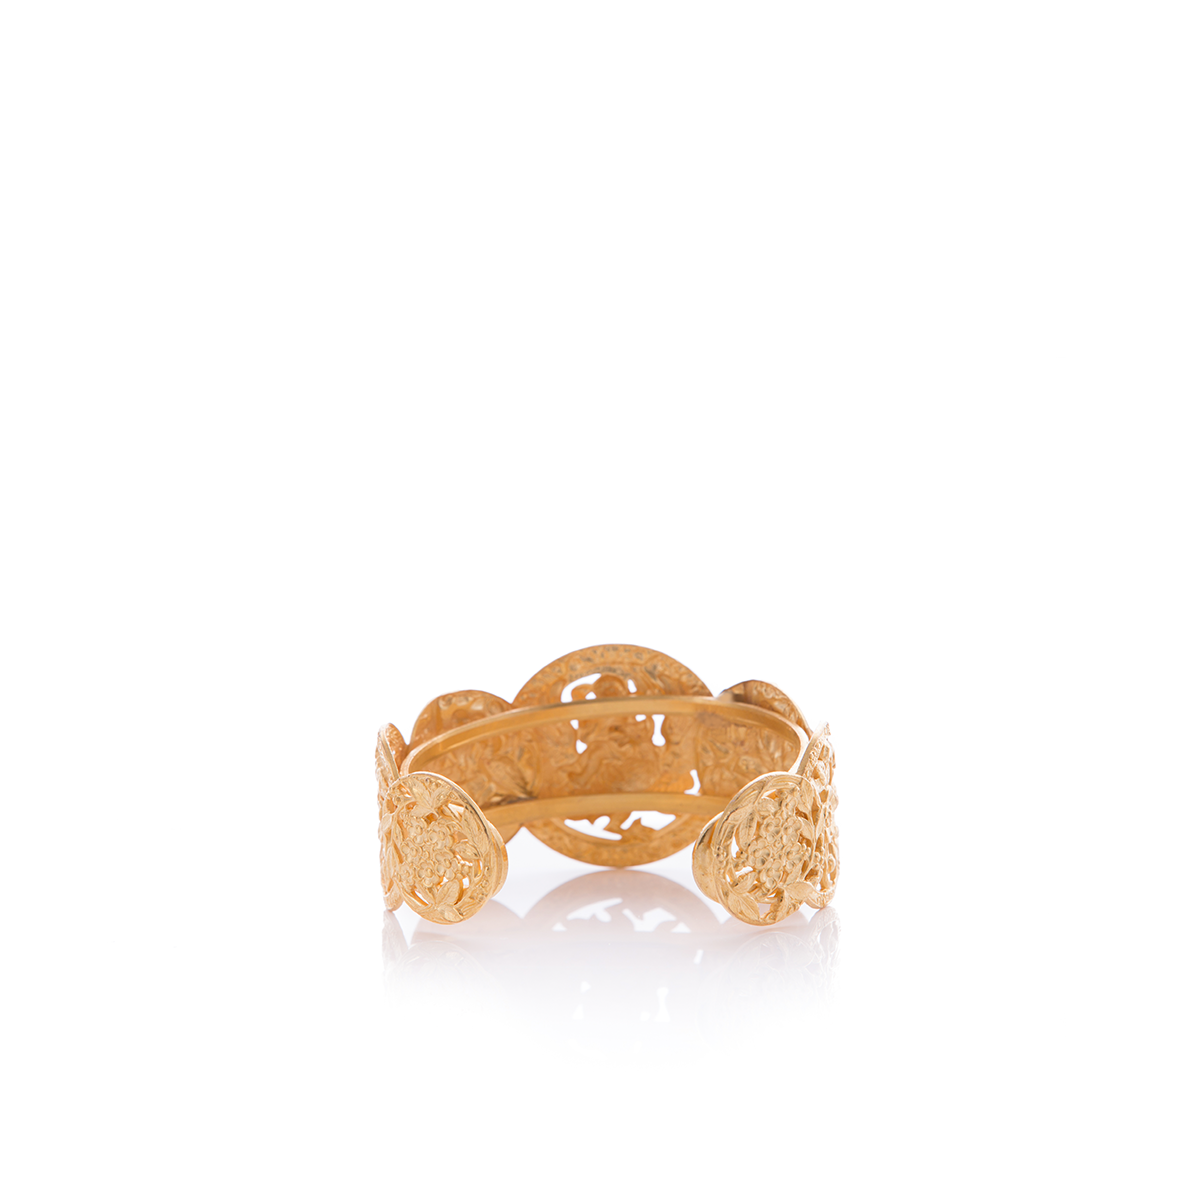 ARIANE Bracelet Gold-Plated